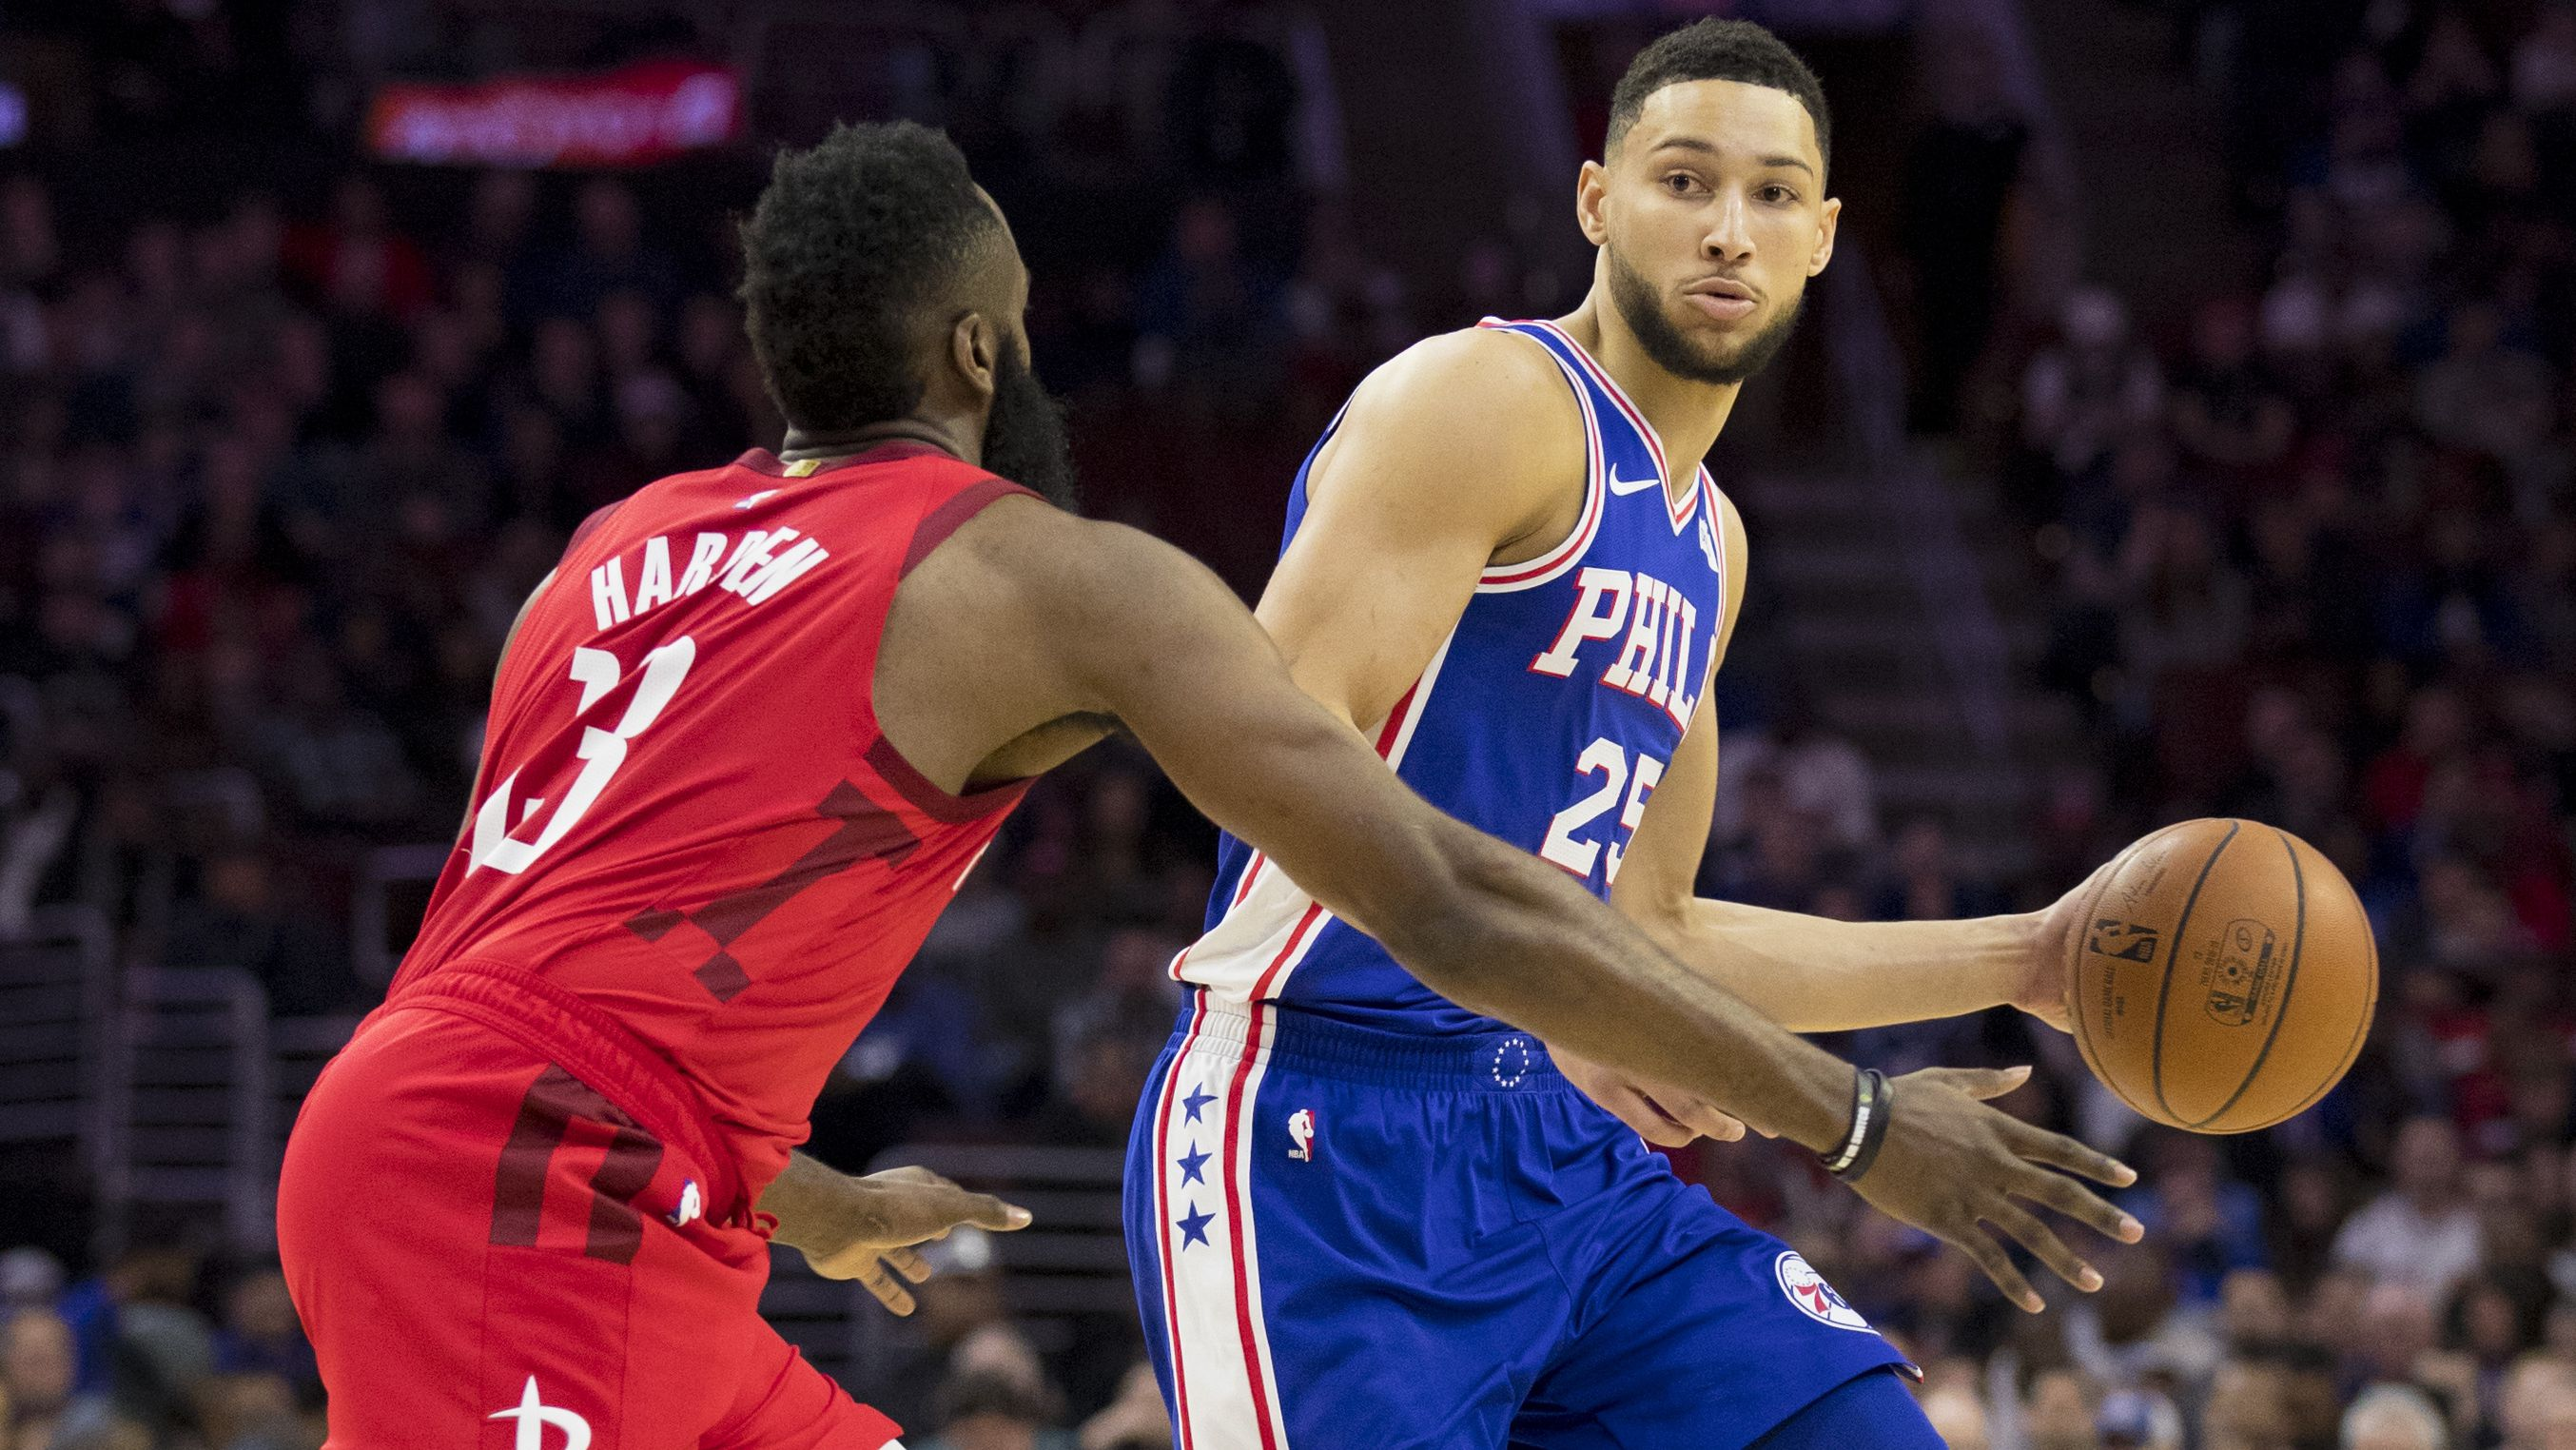 Ben Simmons dribbles the ball against James Harden.